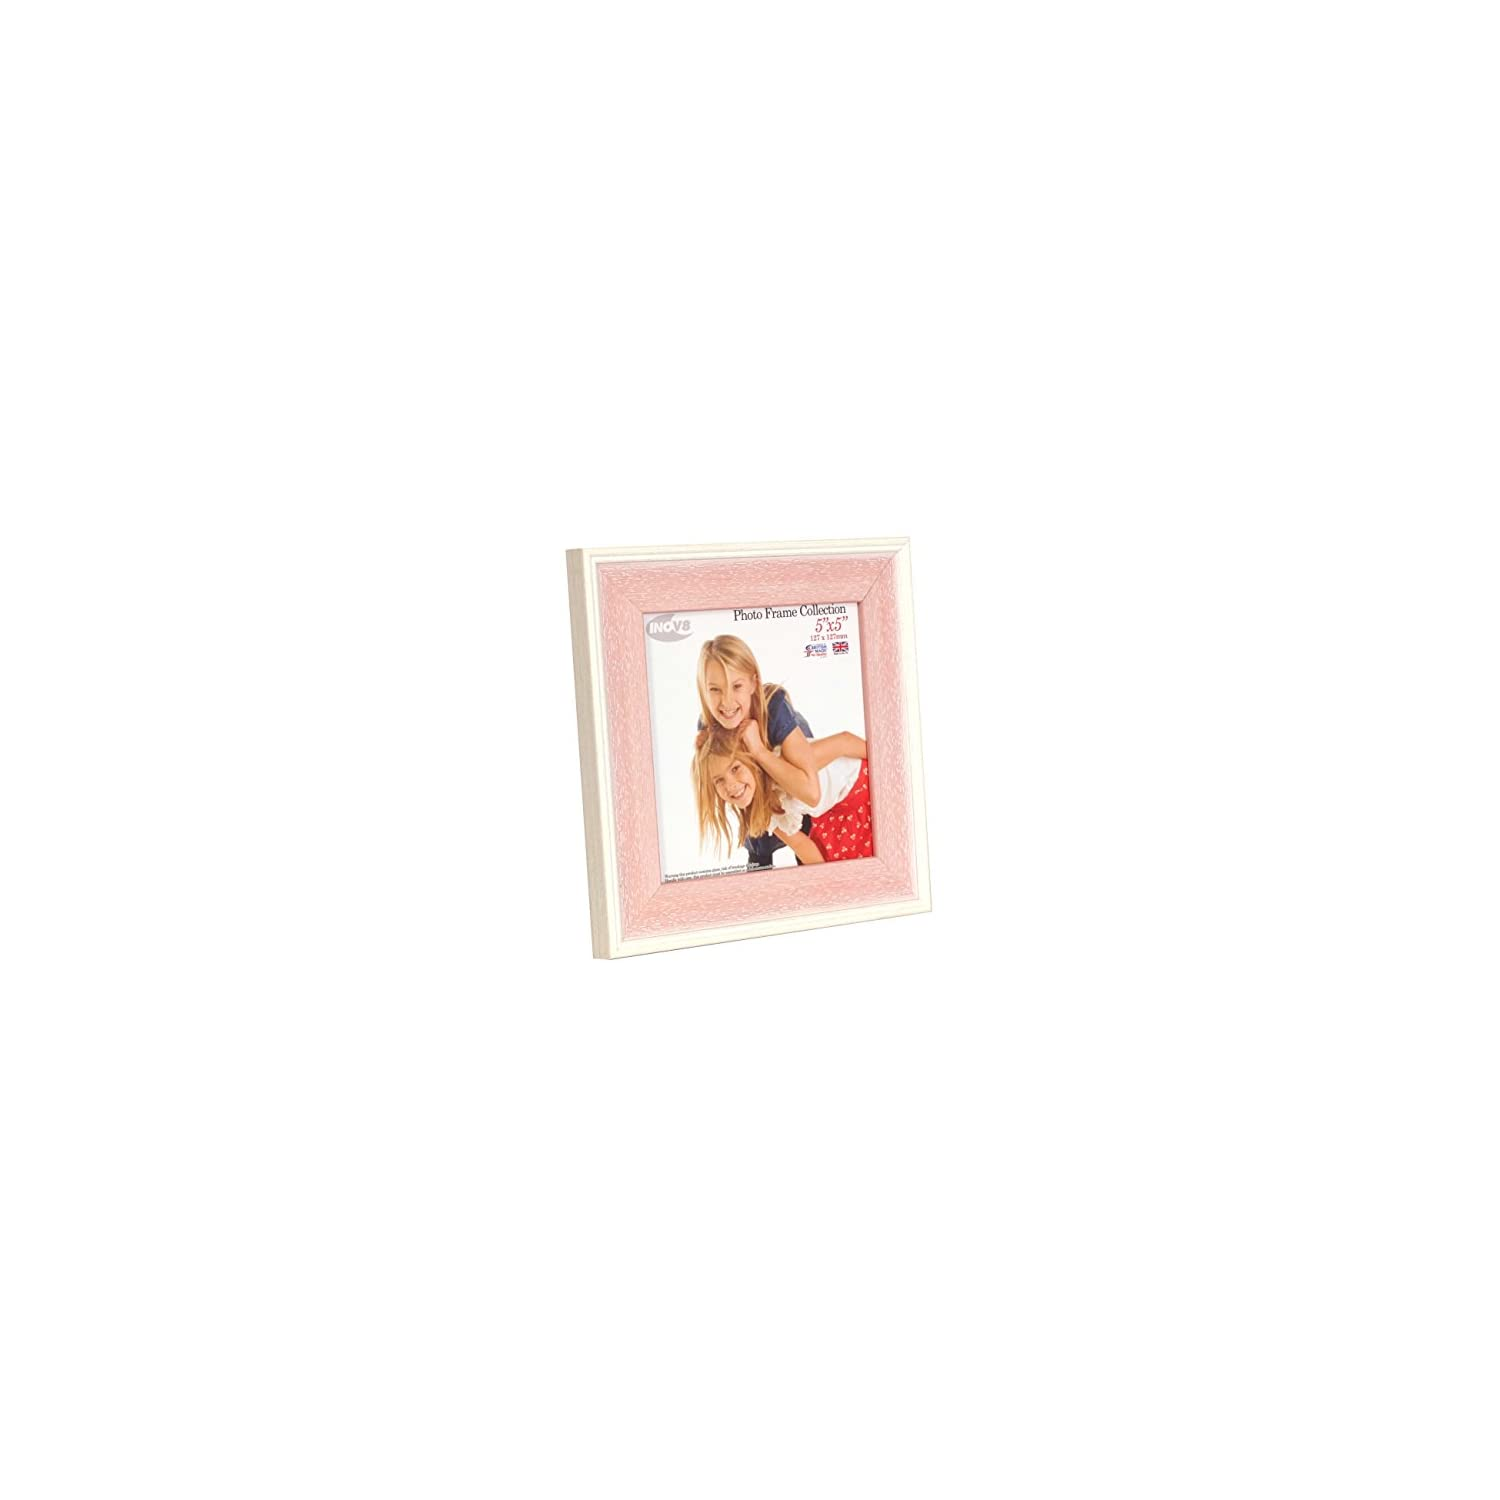 Inov8 British Made Picture/Photo Frame, 5X5 inch, Austen Pink Wash, Pack of 4